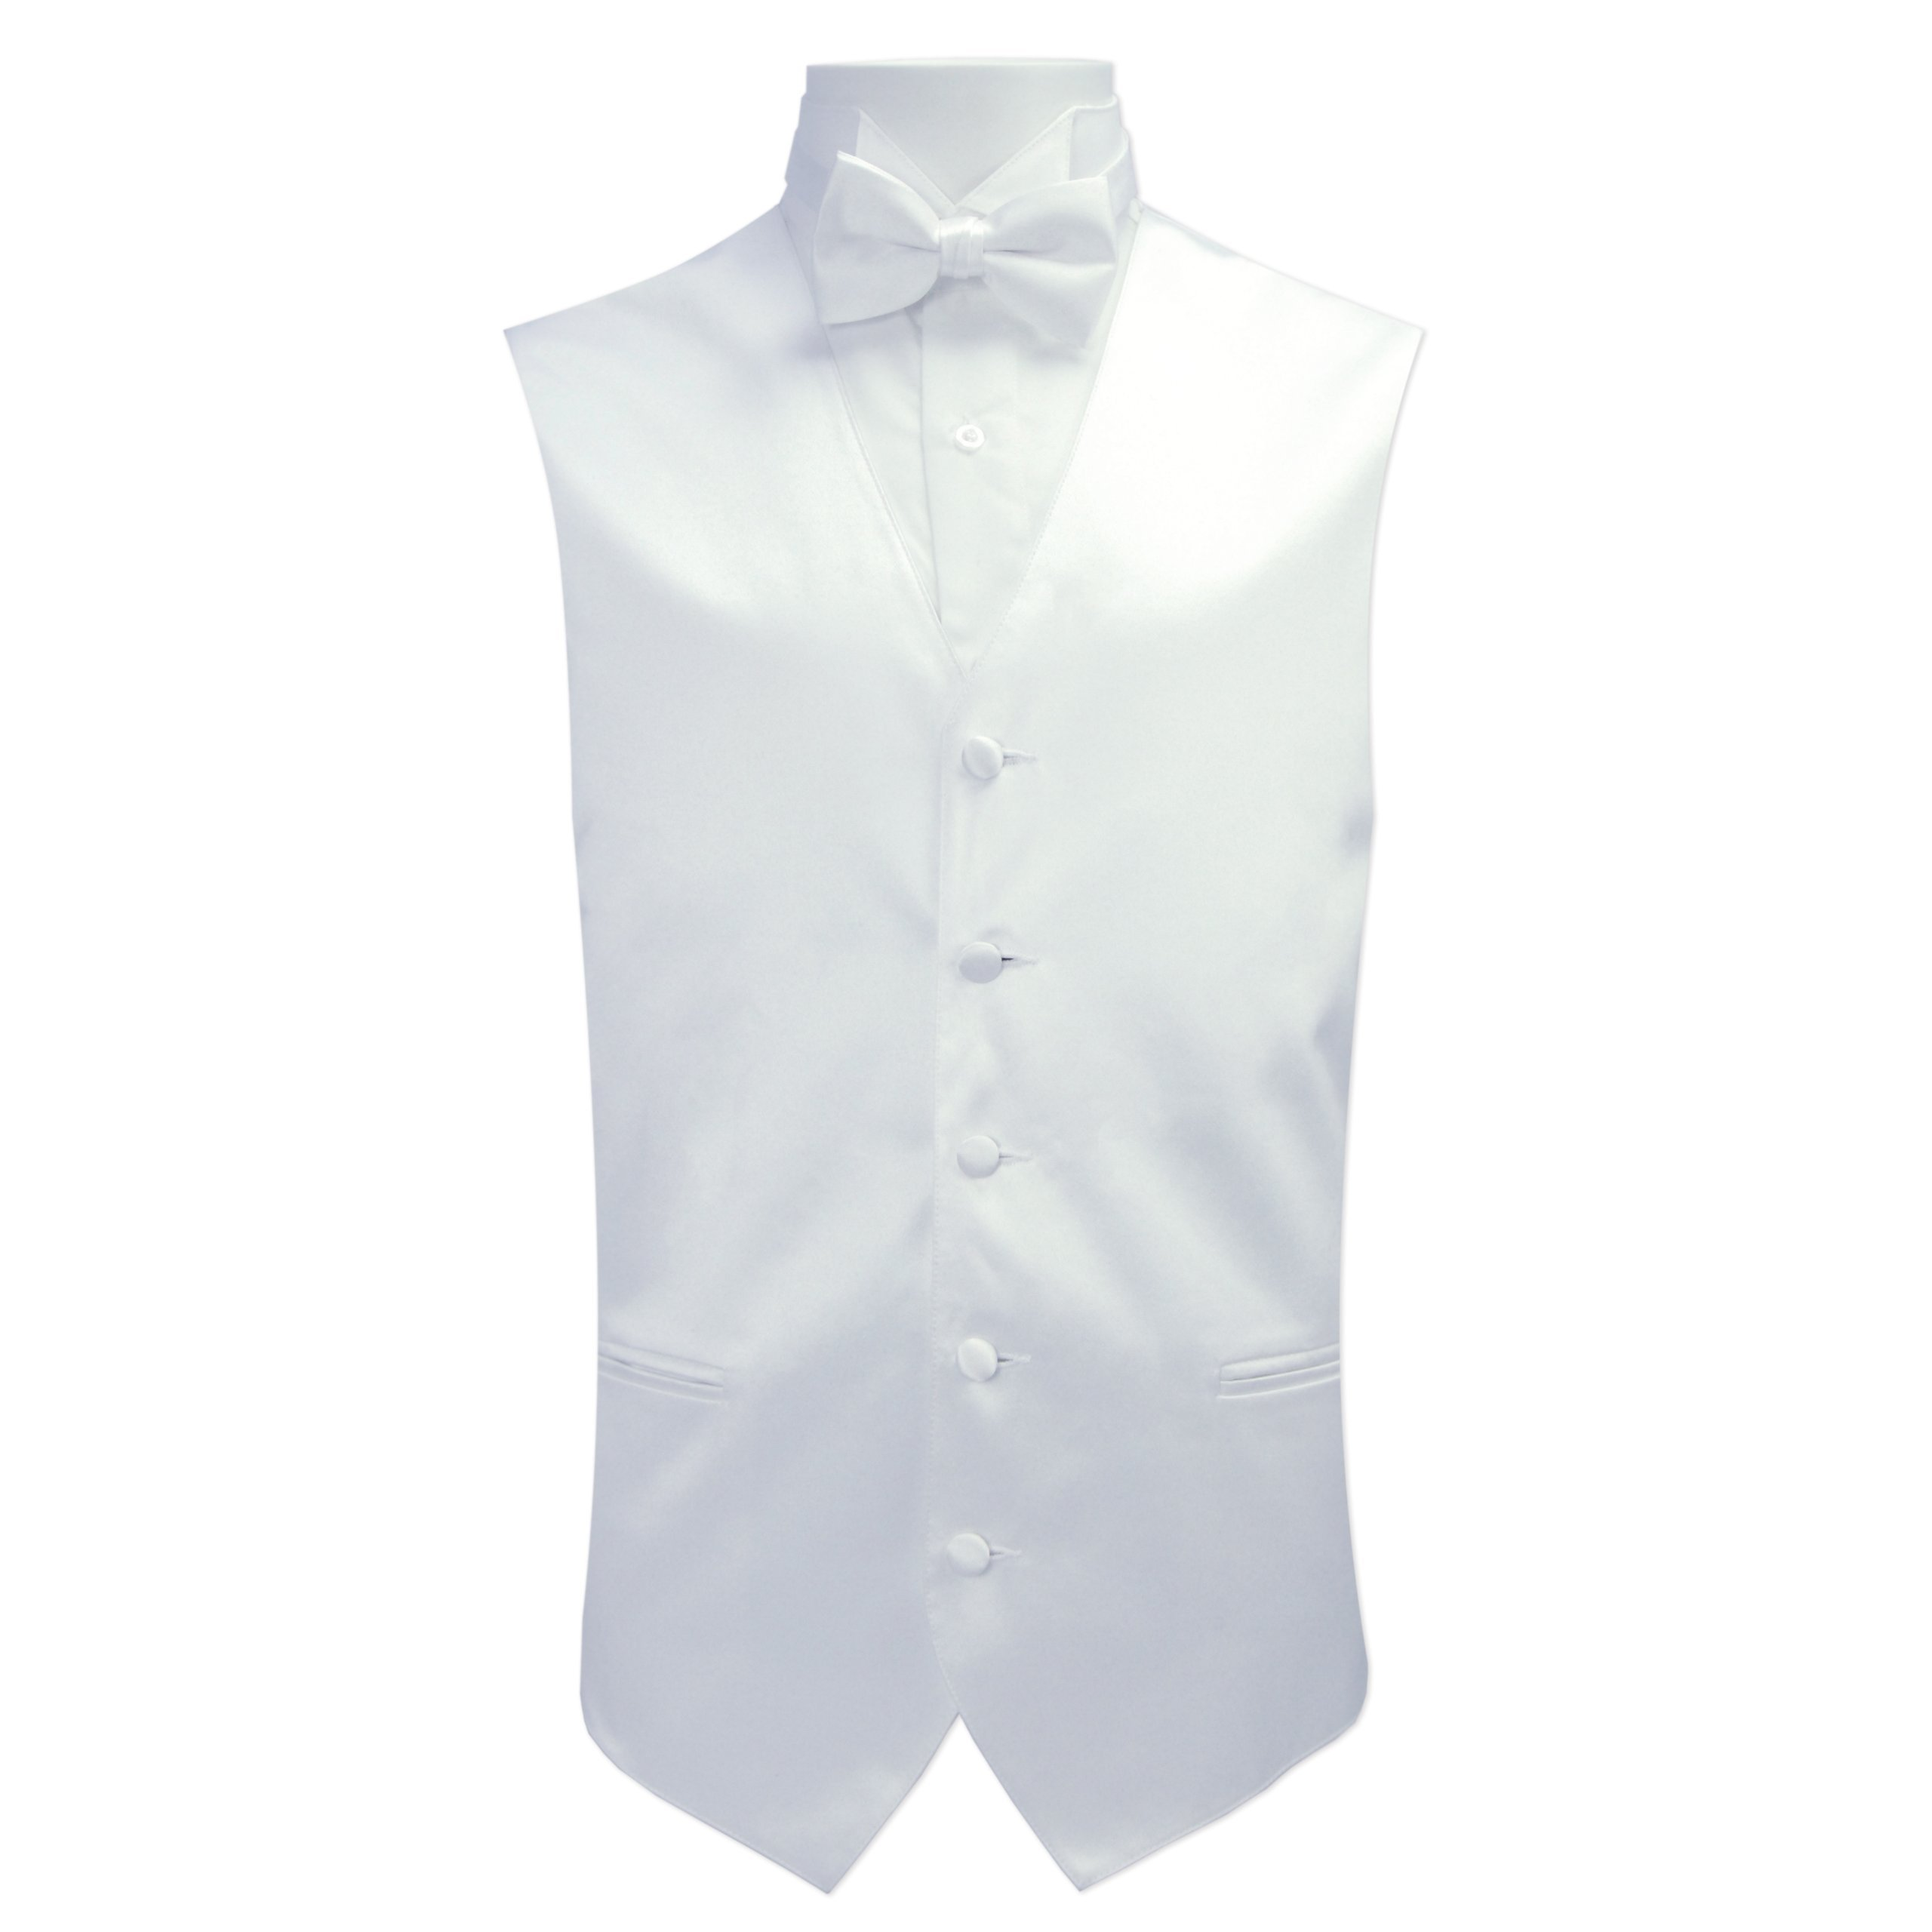 Satin Color Vests with Tie (2XL with Bow Tie, White)